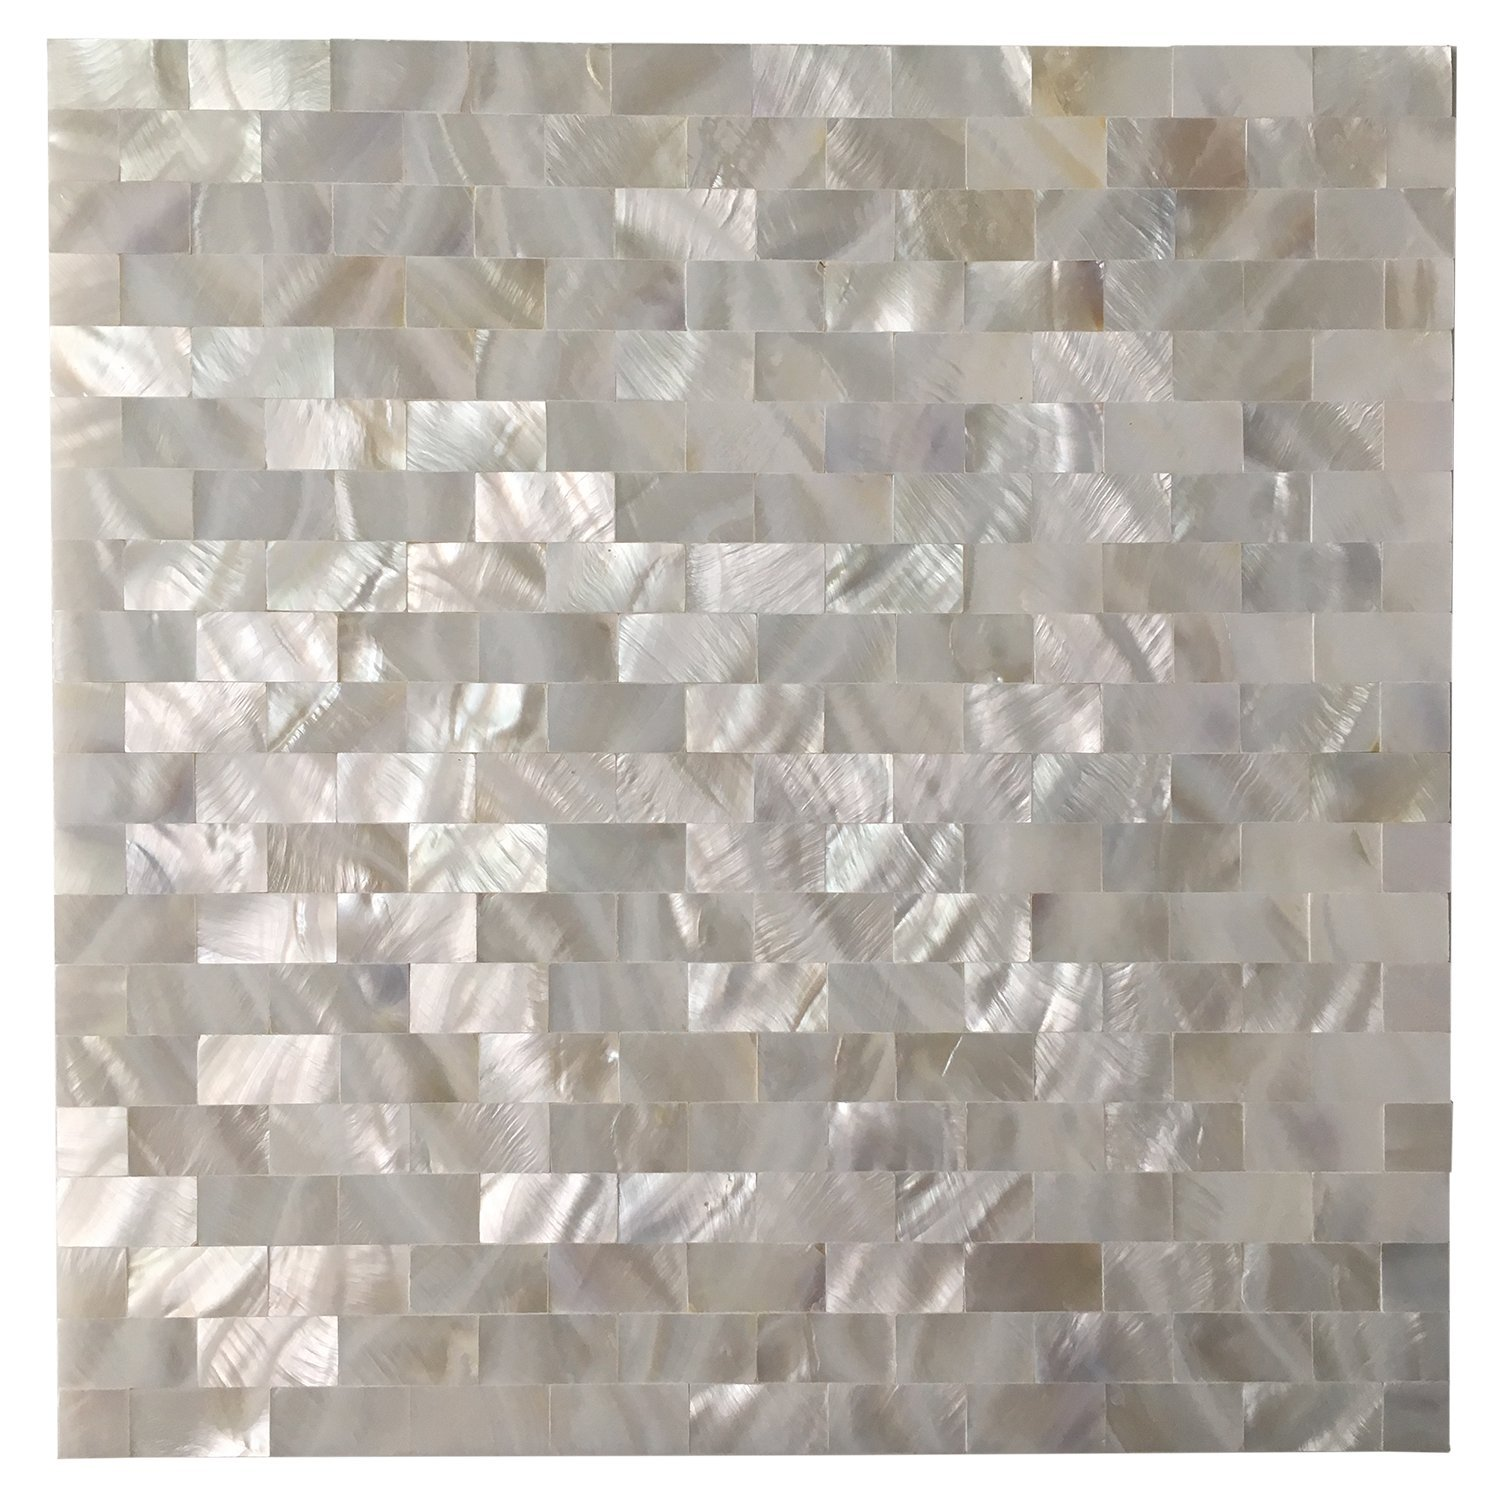 Art3d 6-Pack Mother of Pearl Shell Tile for Kitchen Backsplashes/Shower Wall, 12'' x 12'' White Subway